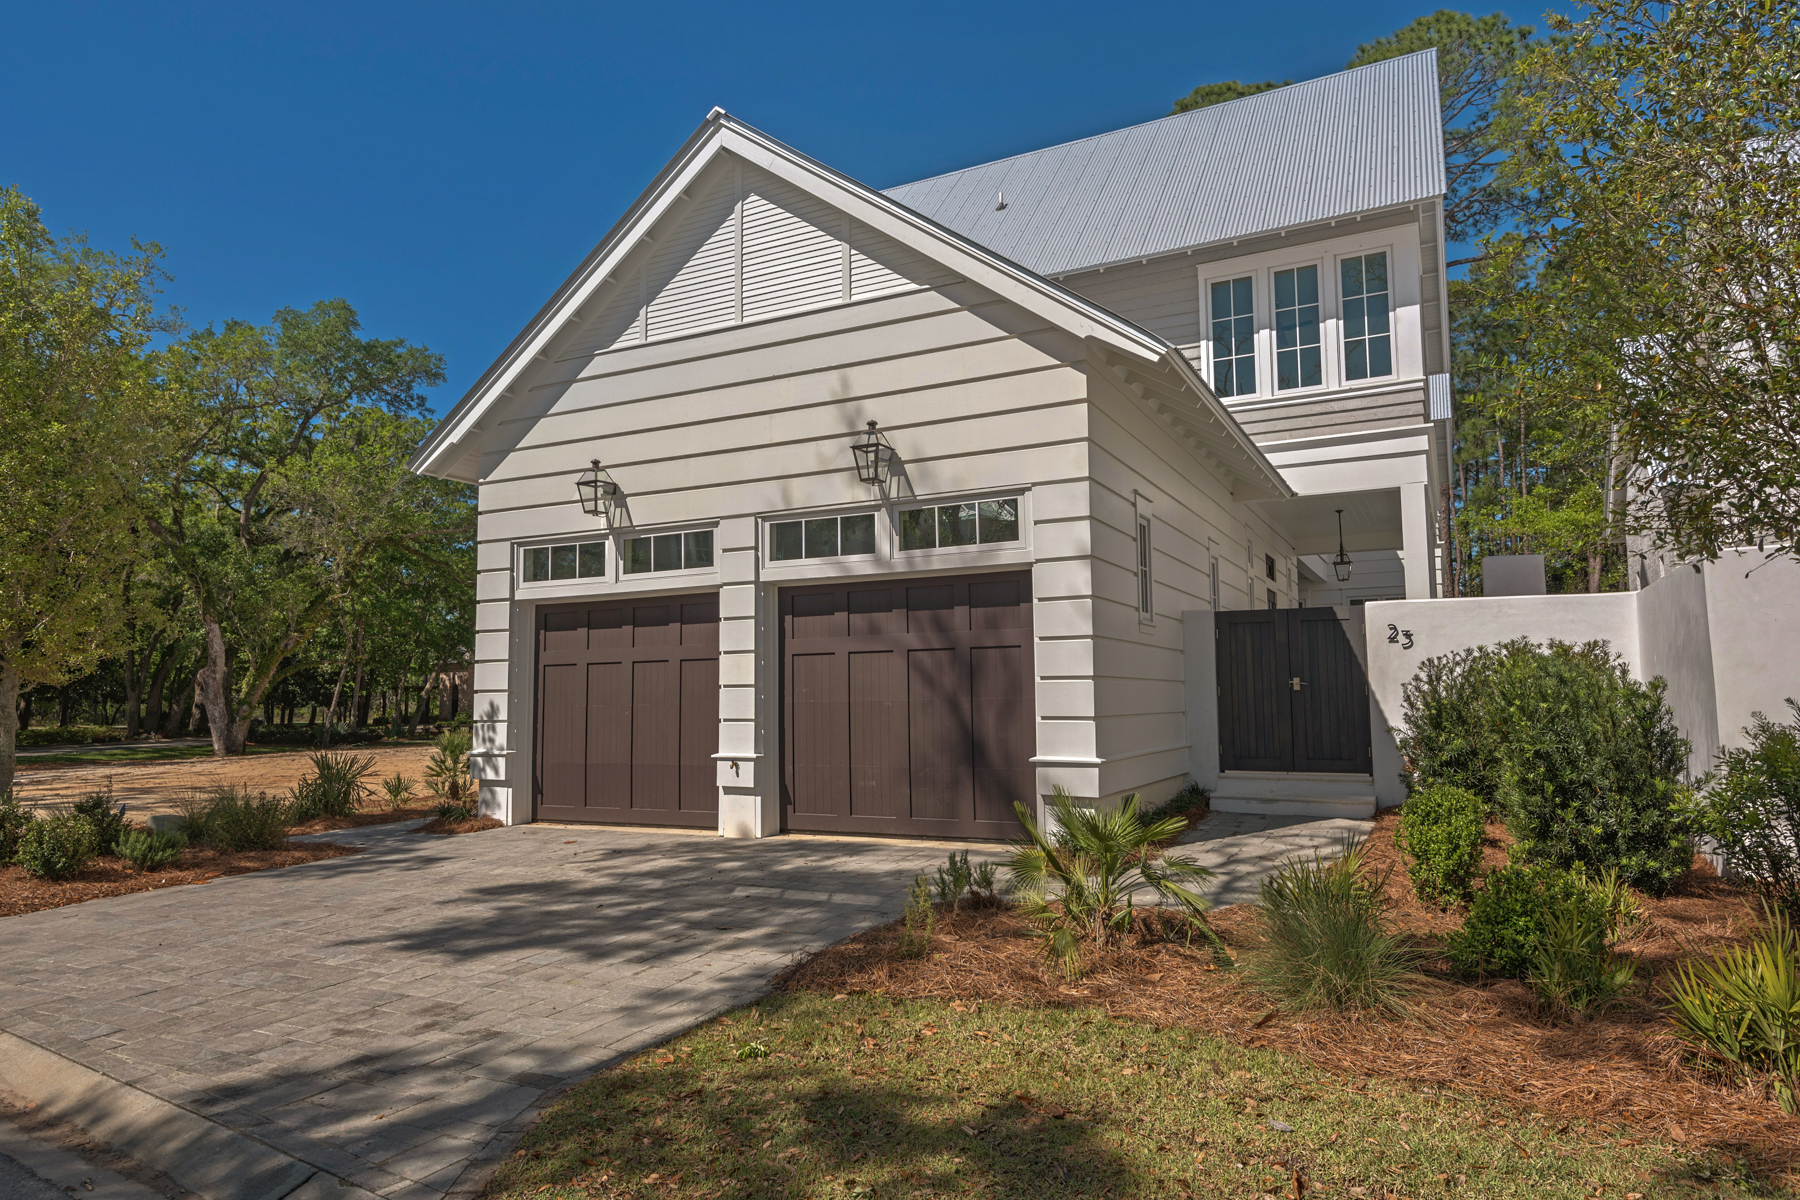 Single Family Home for Sale at NEW CONSTRUCTION HOME IN PREMIER BOATING AND WATERFRONT COMMUNITY 23 Bennett Santa Rosa Beach, Florida, 32459 United States